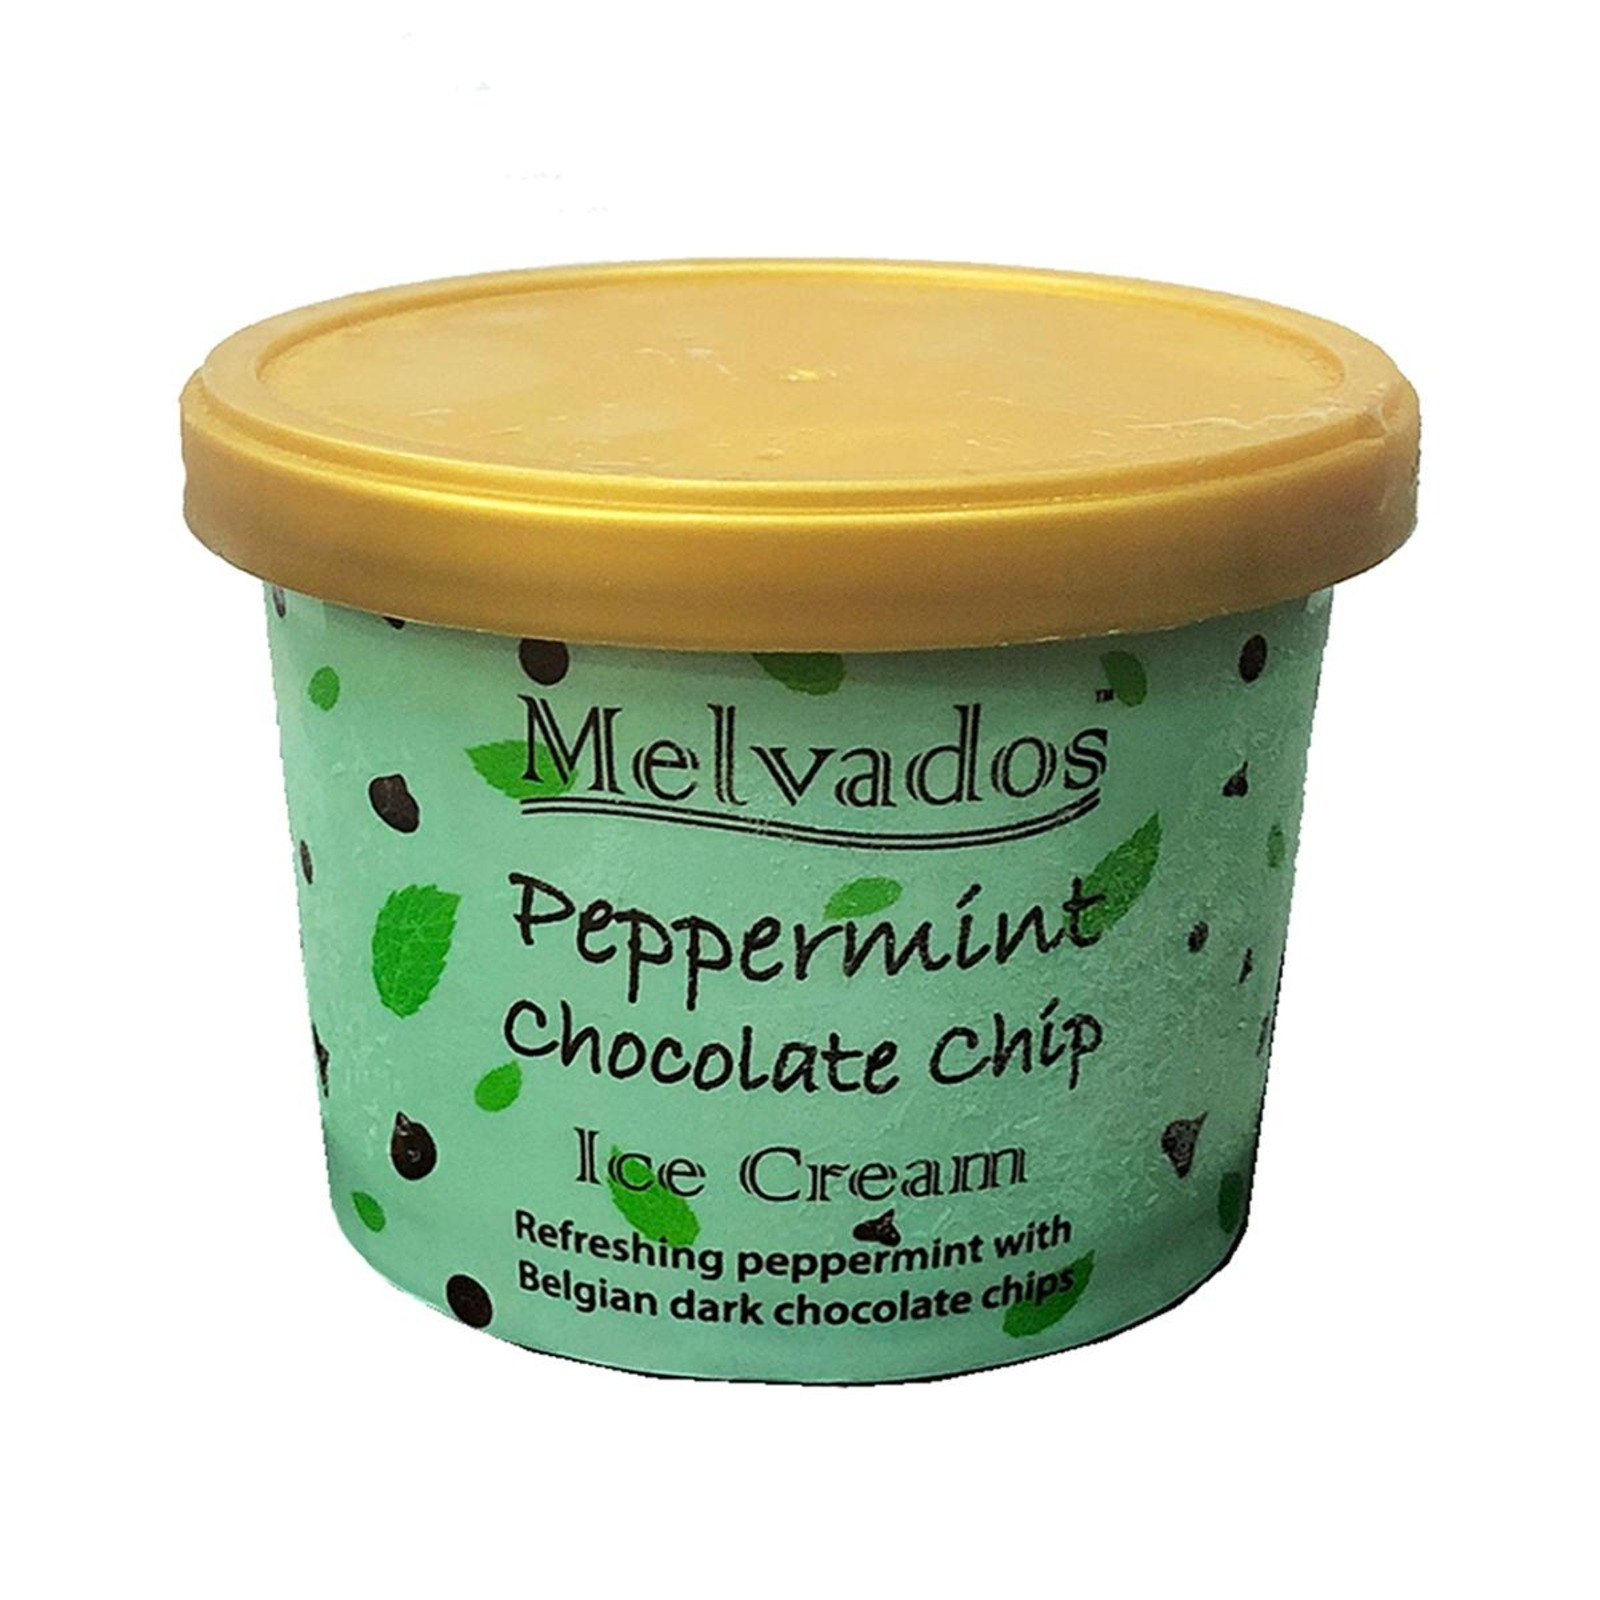 MELVADOS Peppermint Chocolate Chip Ice Cream